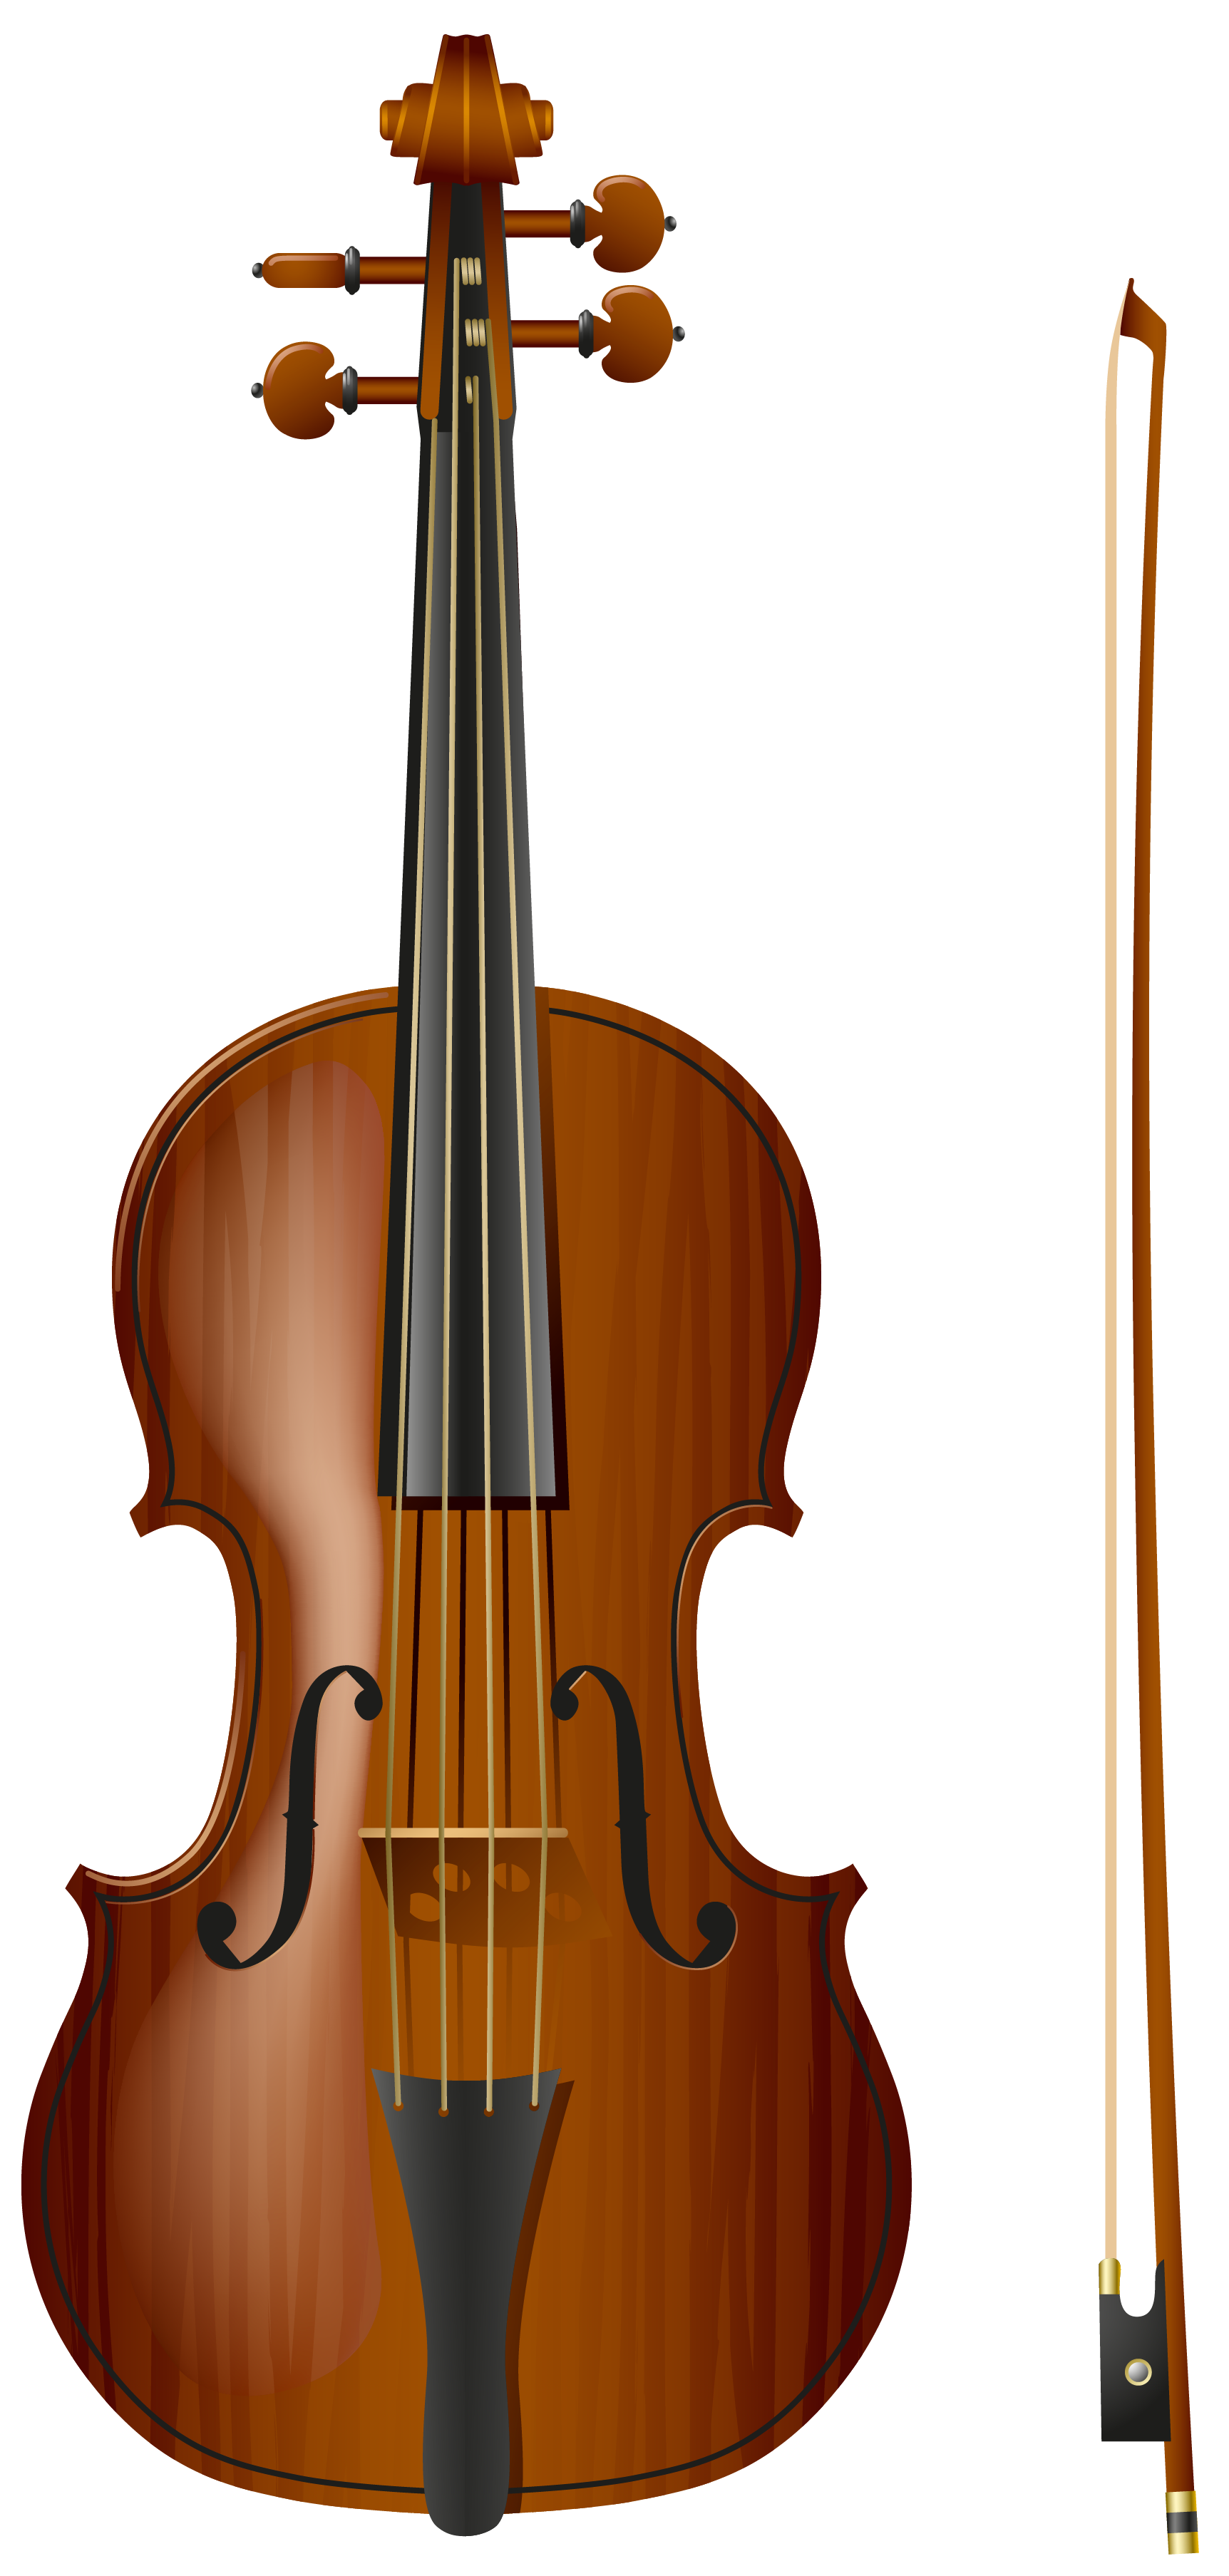 Violin transparent png. Picture gallery yopriceville high